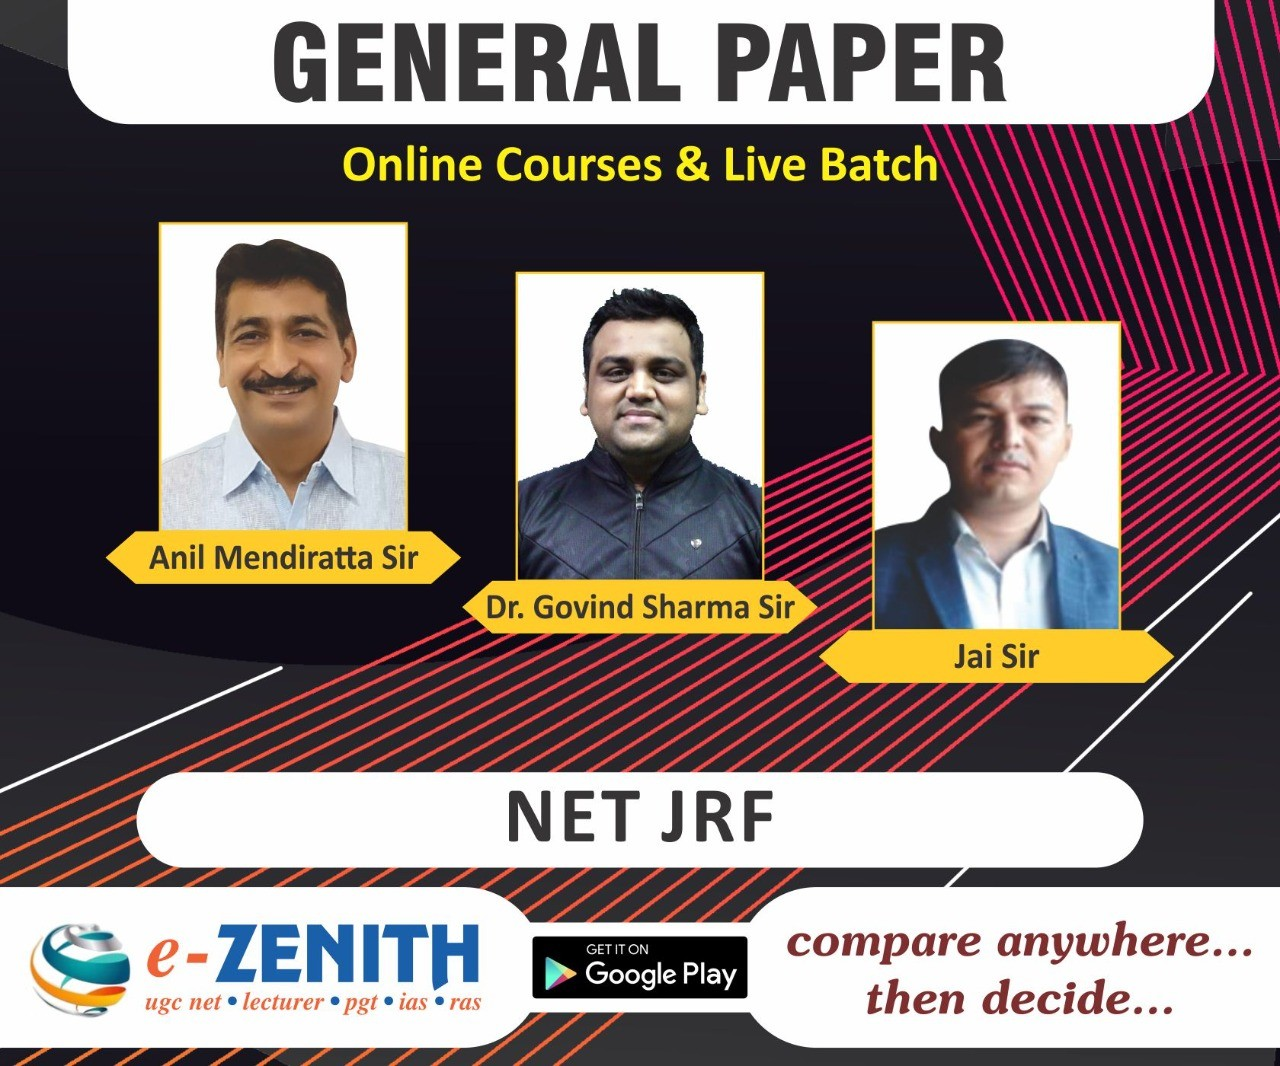 UGC NET GENERAL PAPER ONLINE COURSE